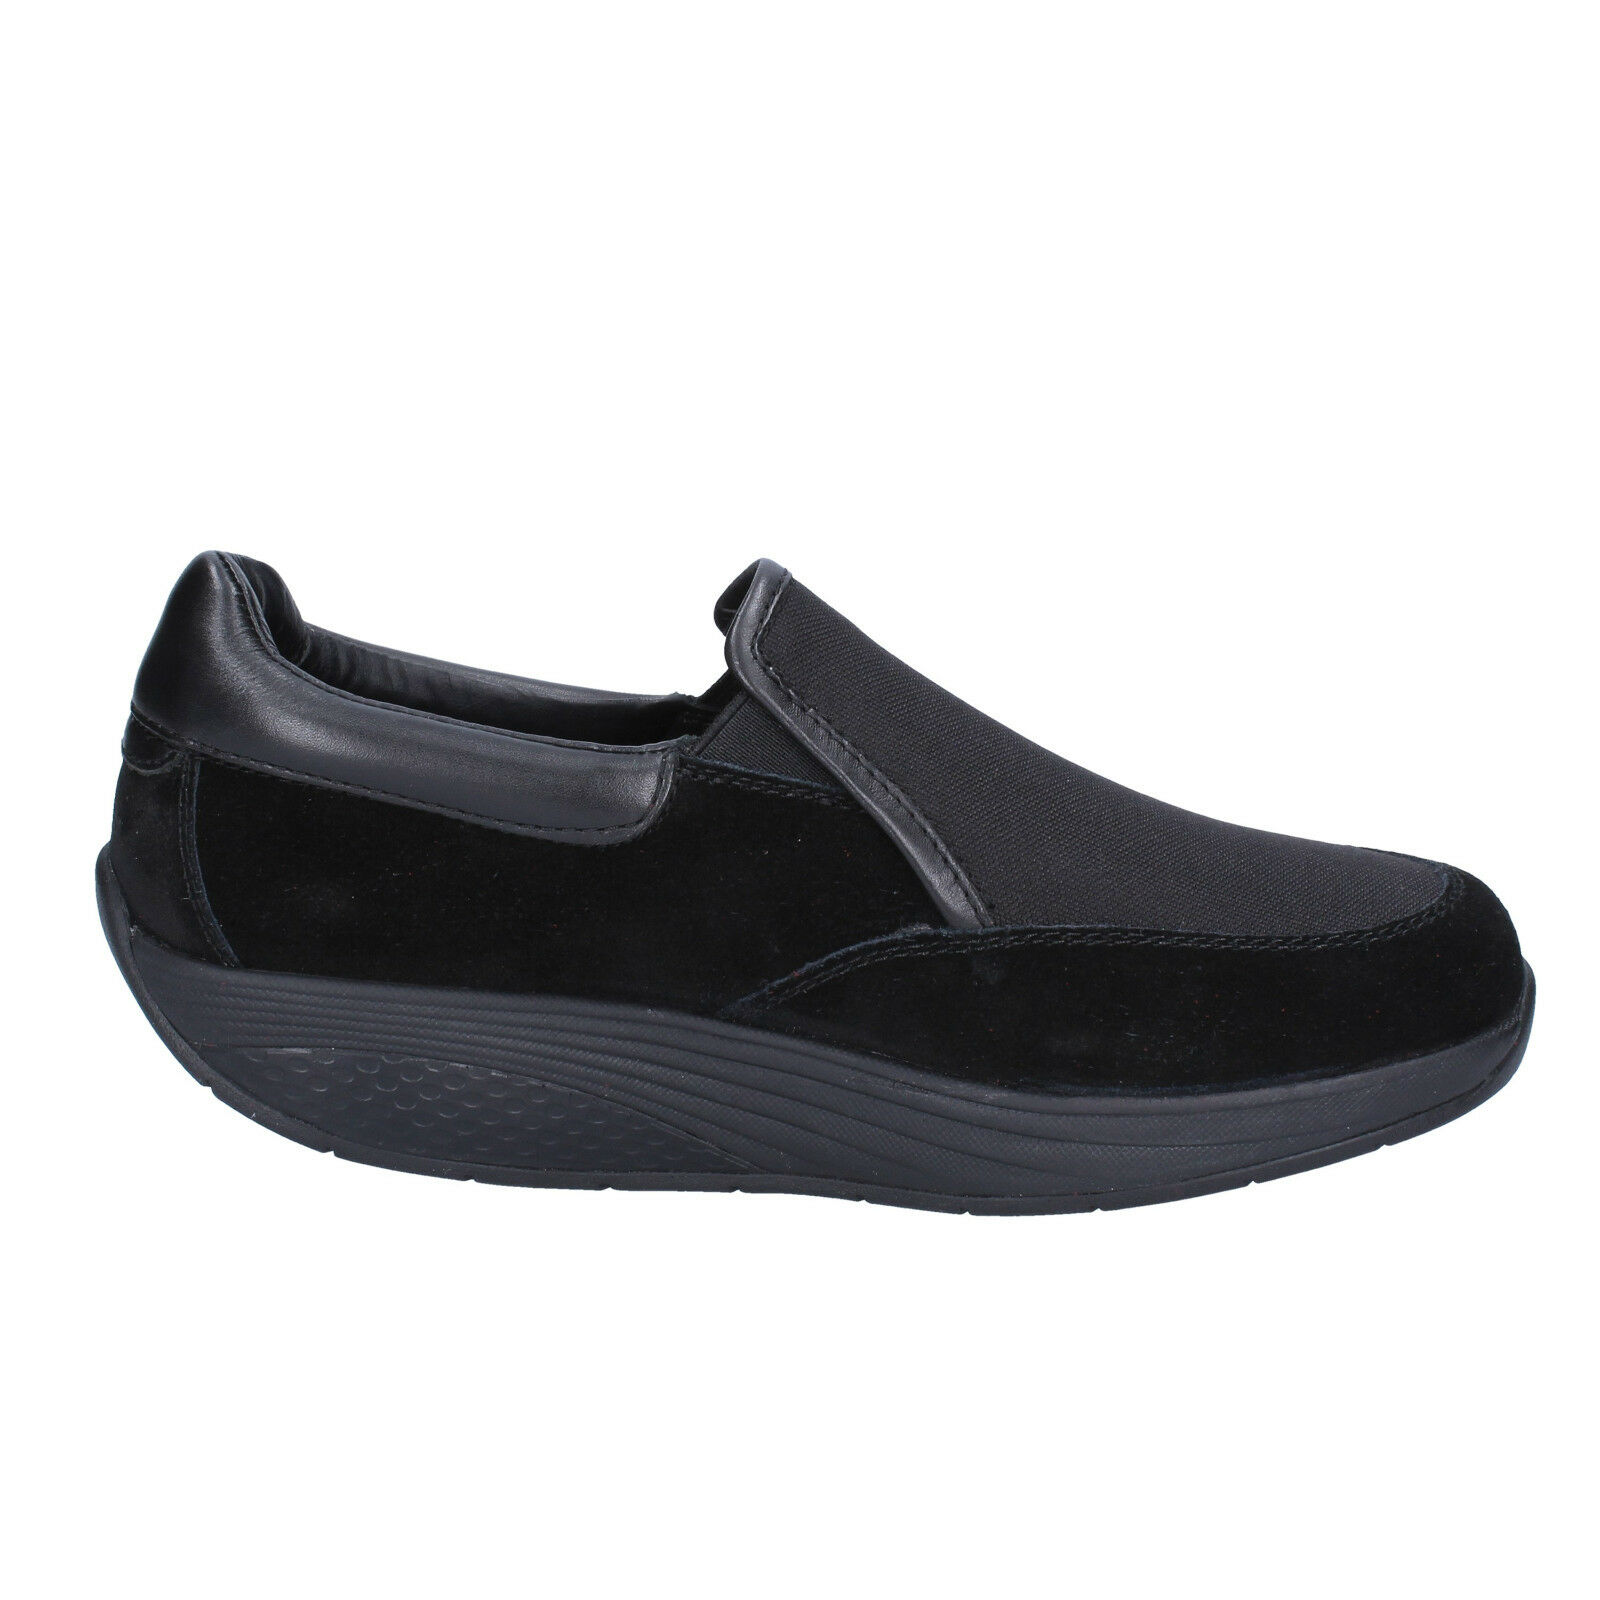 Scarpe donna MBT 38 EU slip on performance mocassini nero pelle camoscio performance on BT99-38 80728d